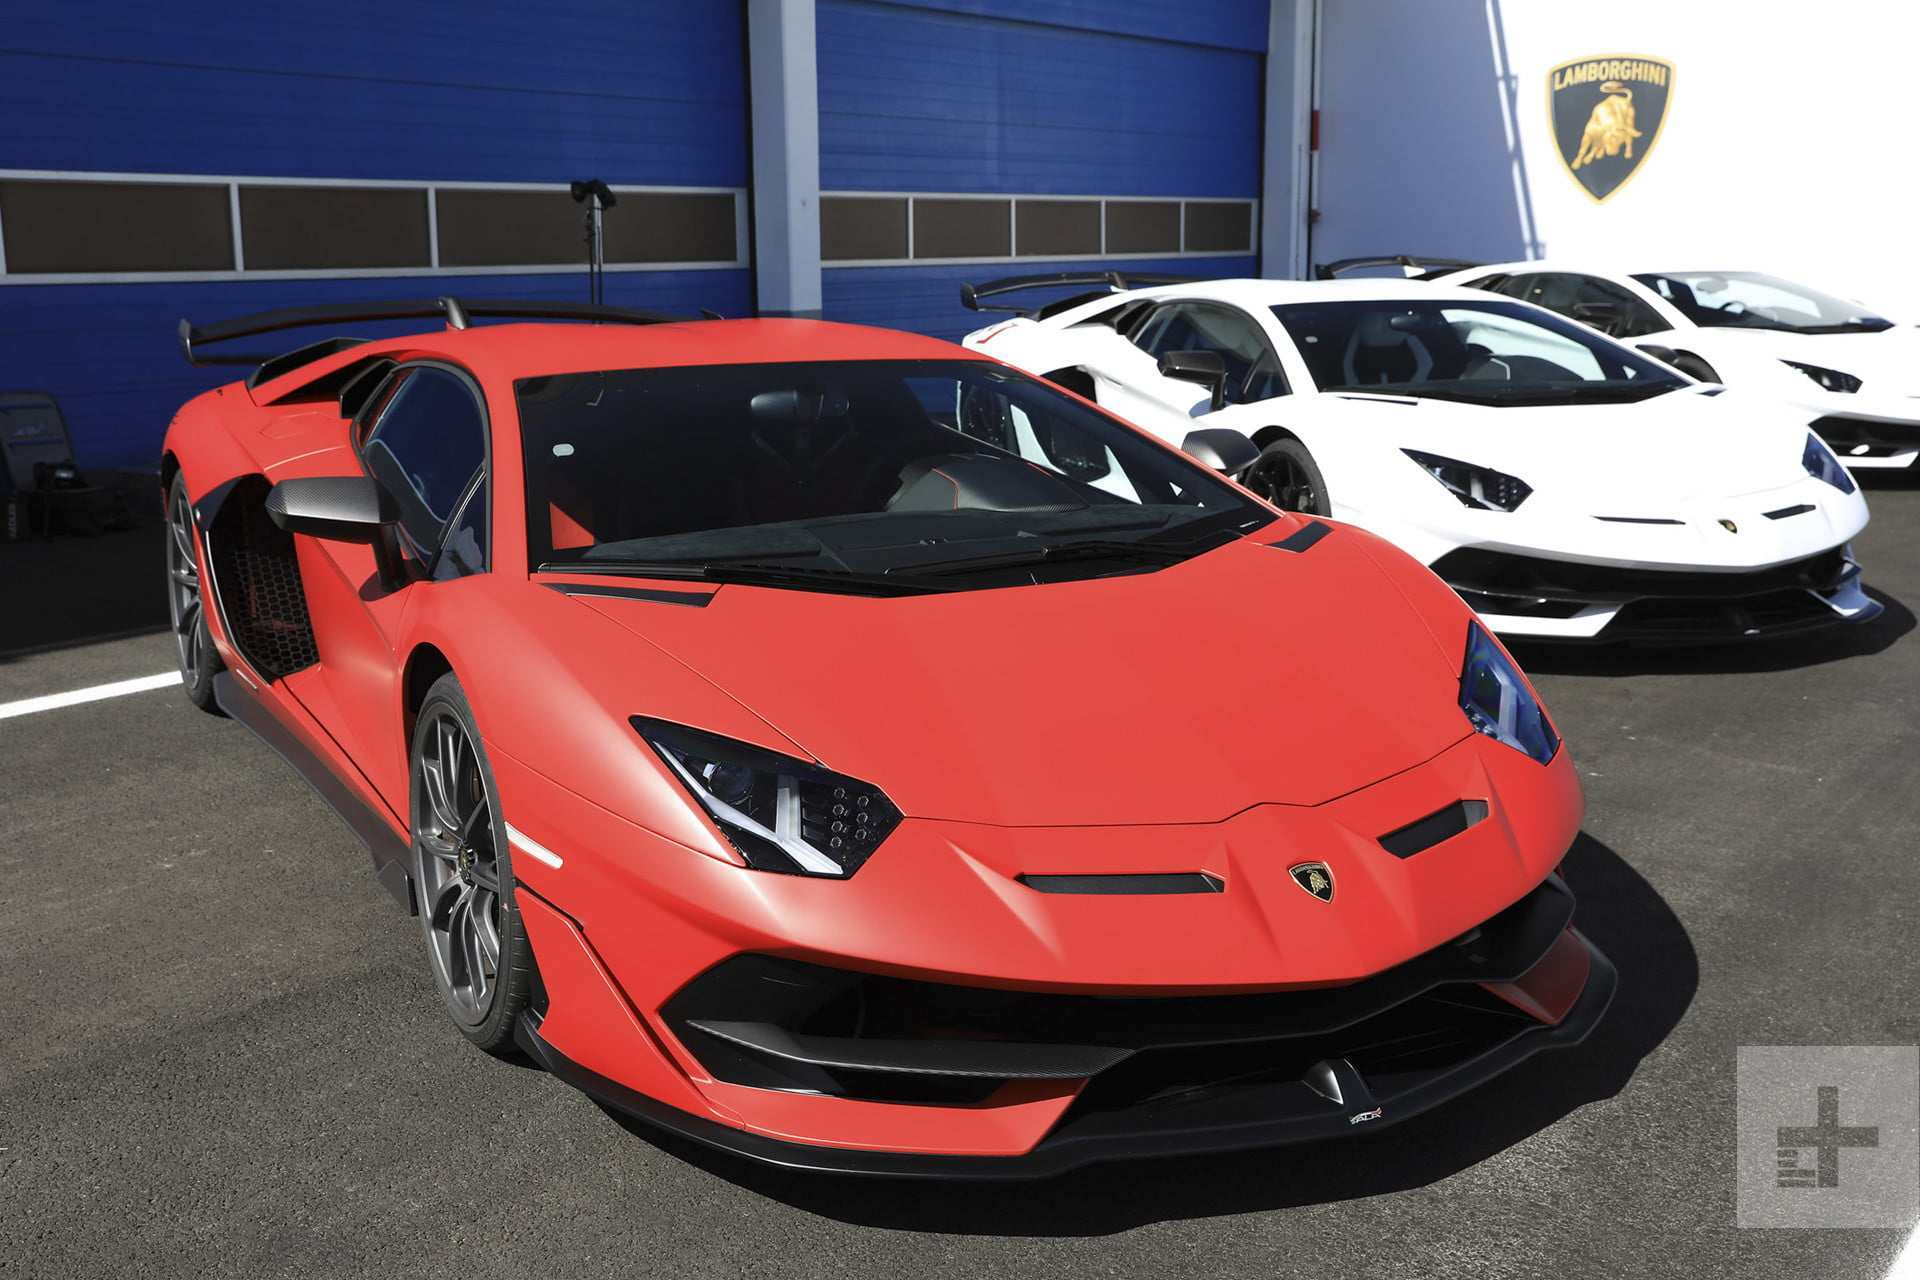 19 All New 2019 Lamborghini Aventador Model